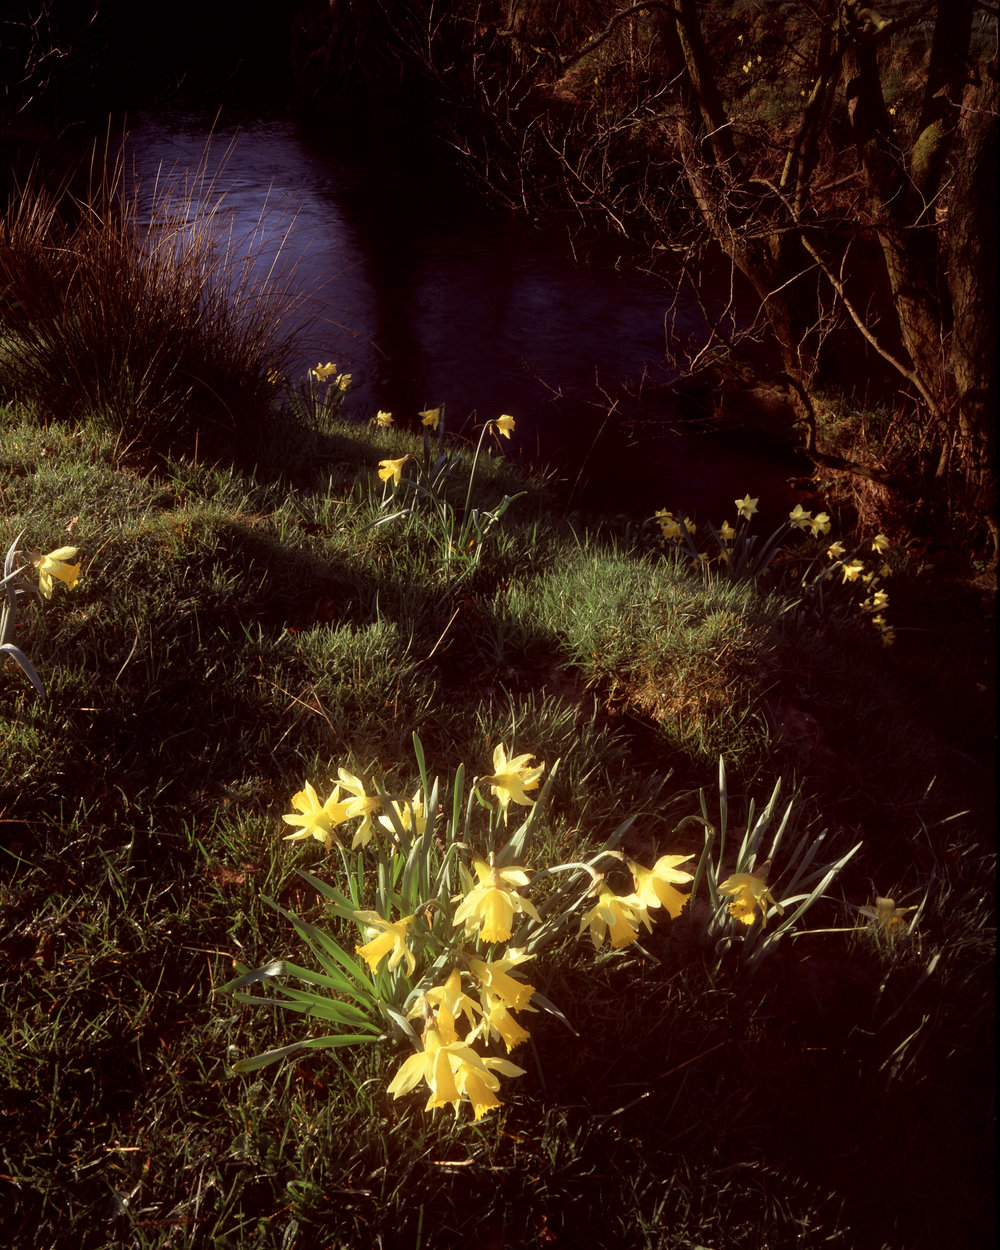 Daffodils by the River Dove